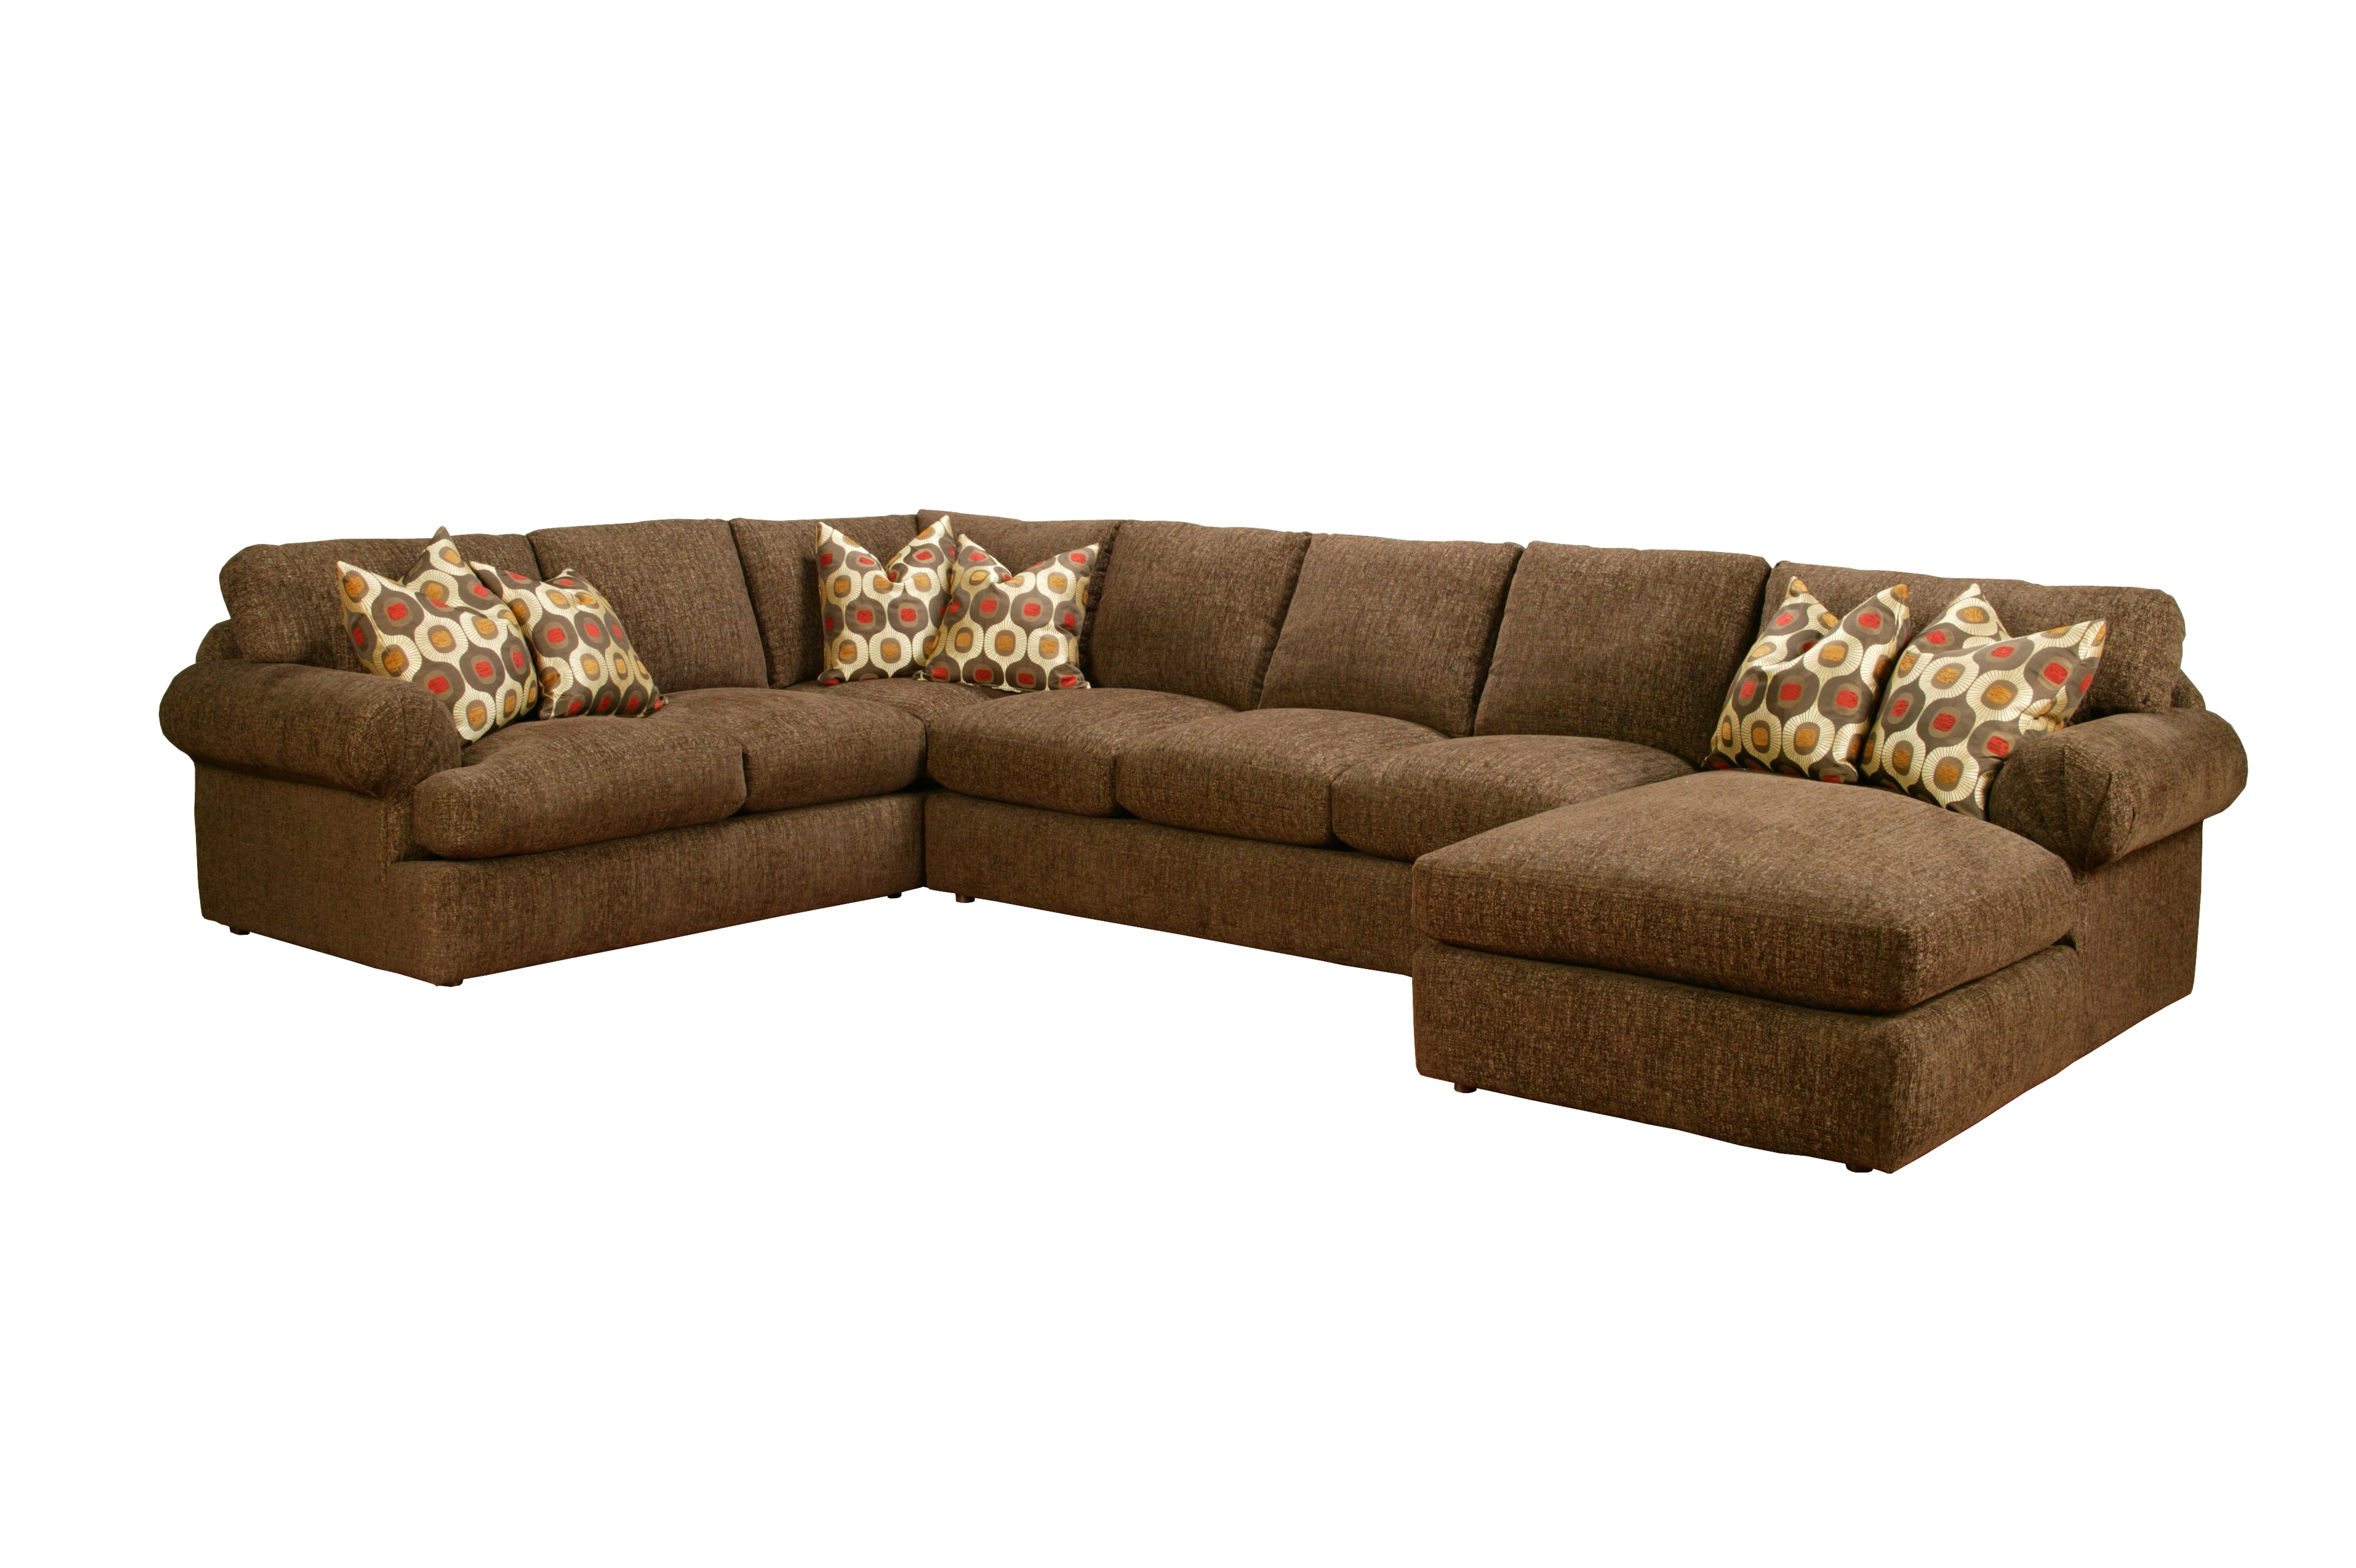 Popular Phoenix Arizona Sectional Sofas With Robert Michael Fifth Ave Sofa Sectionals Phoenix Arizona (View 15 of 20)